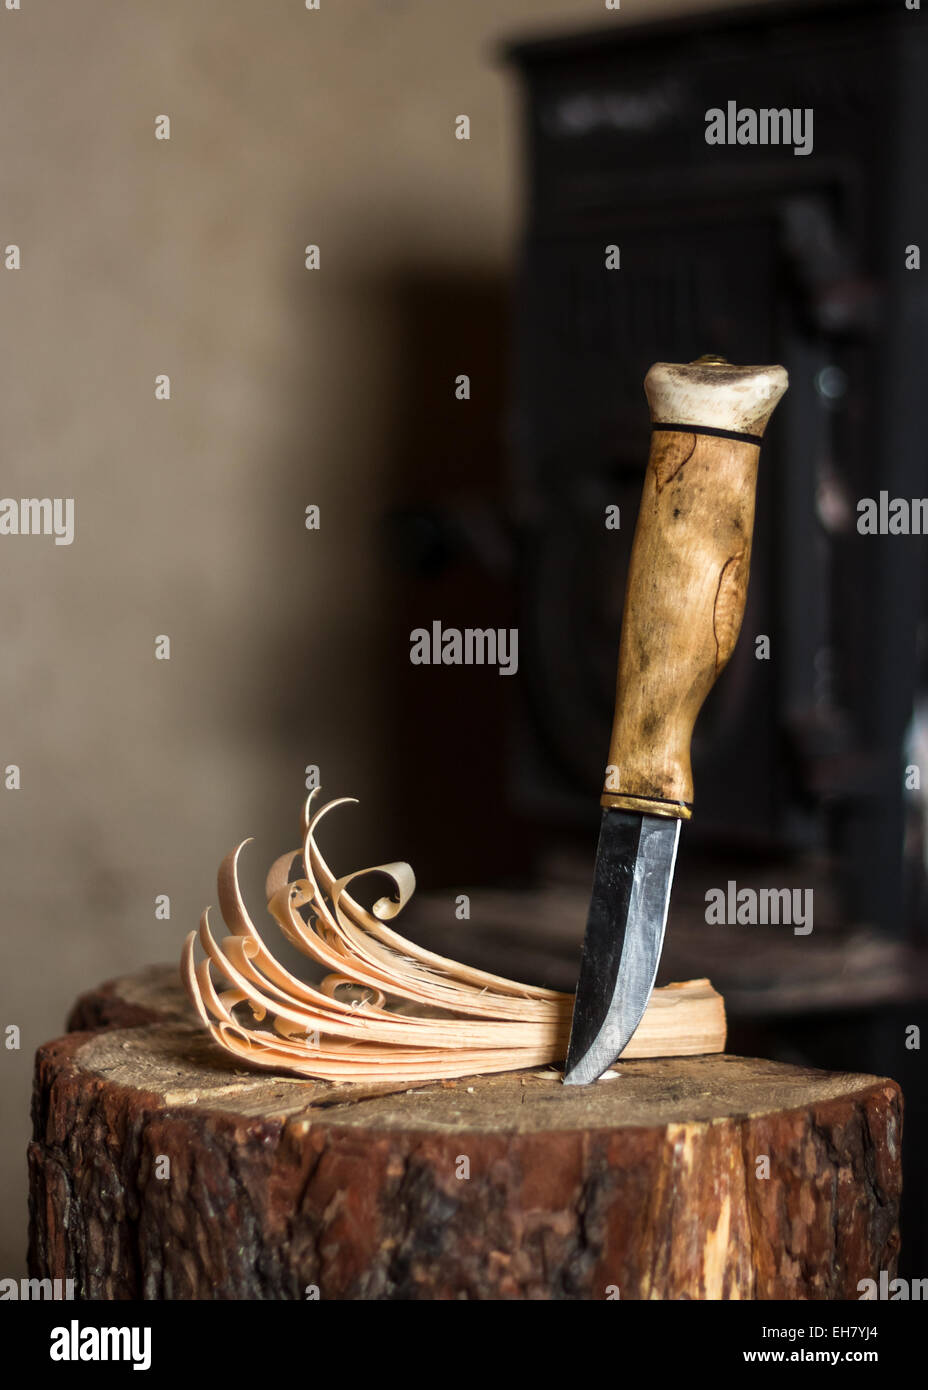 A traditional Finnish knife (puukko) and a feather stick. - Stock Image